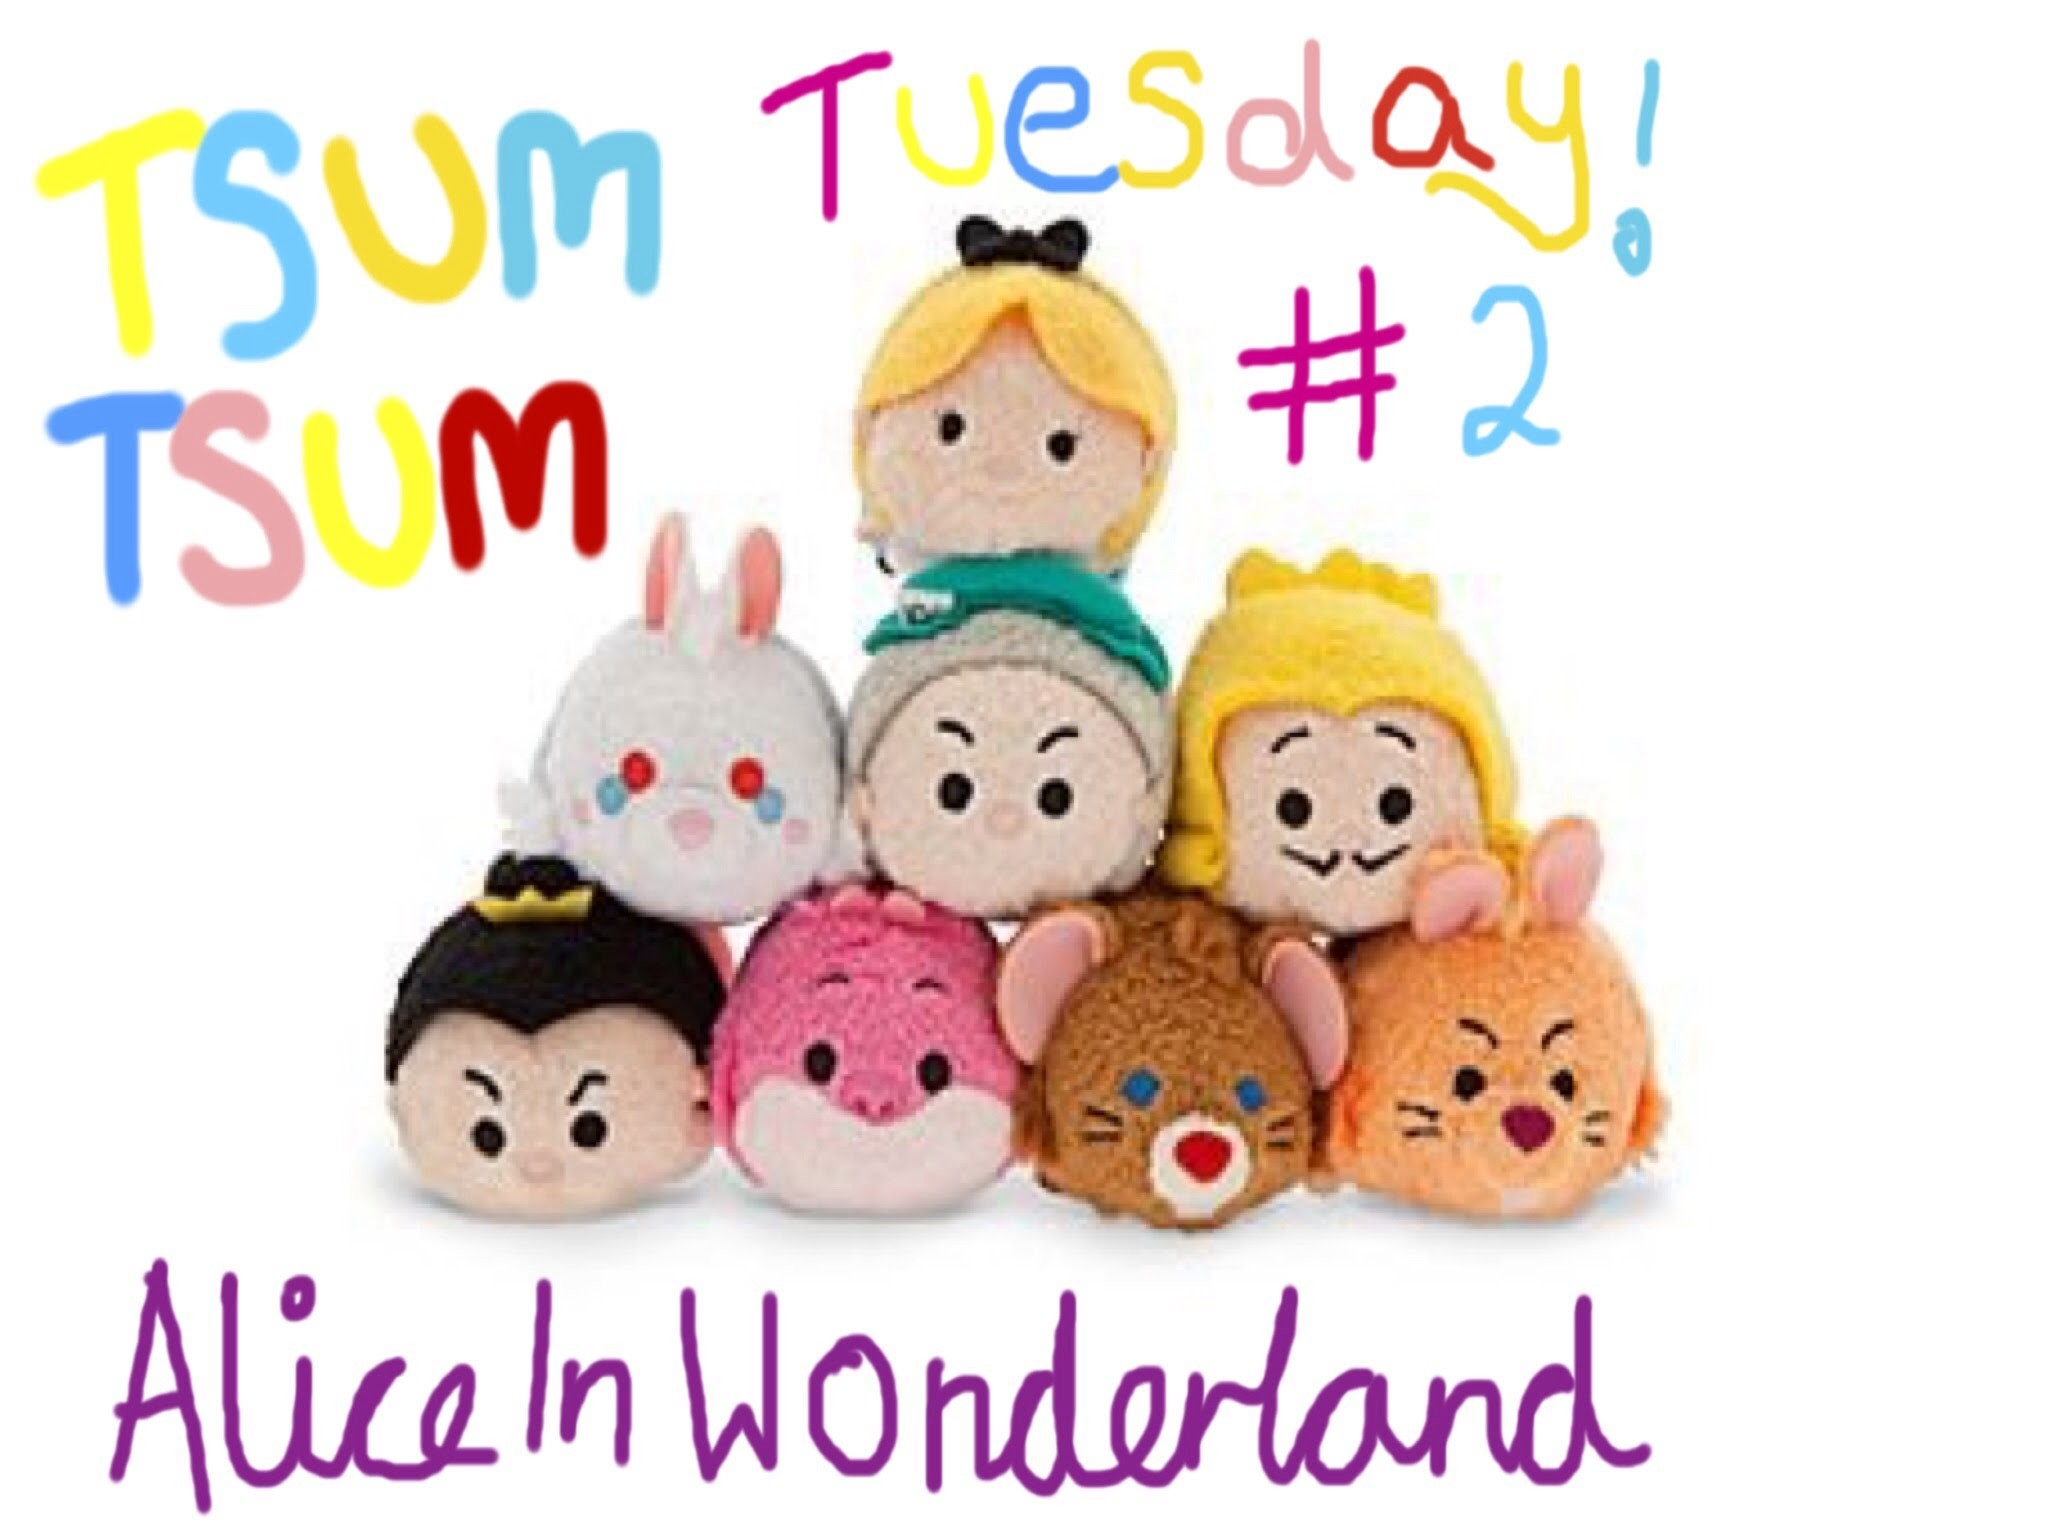 2048x1536 Tsum Tsum Tuesday! Alice In Wonderland! And Guests! #2